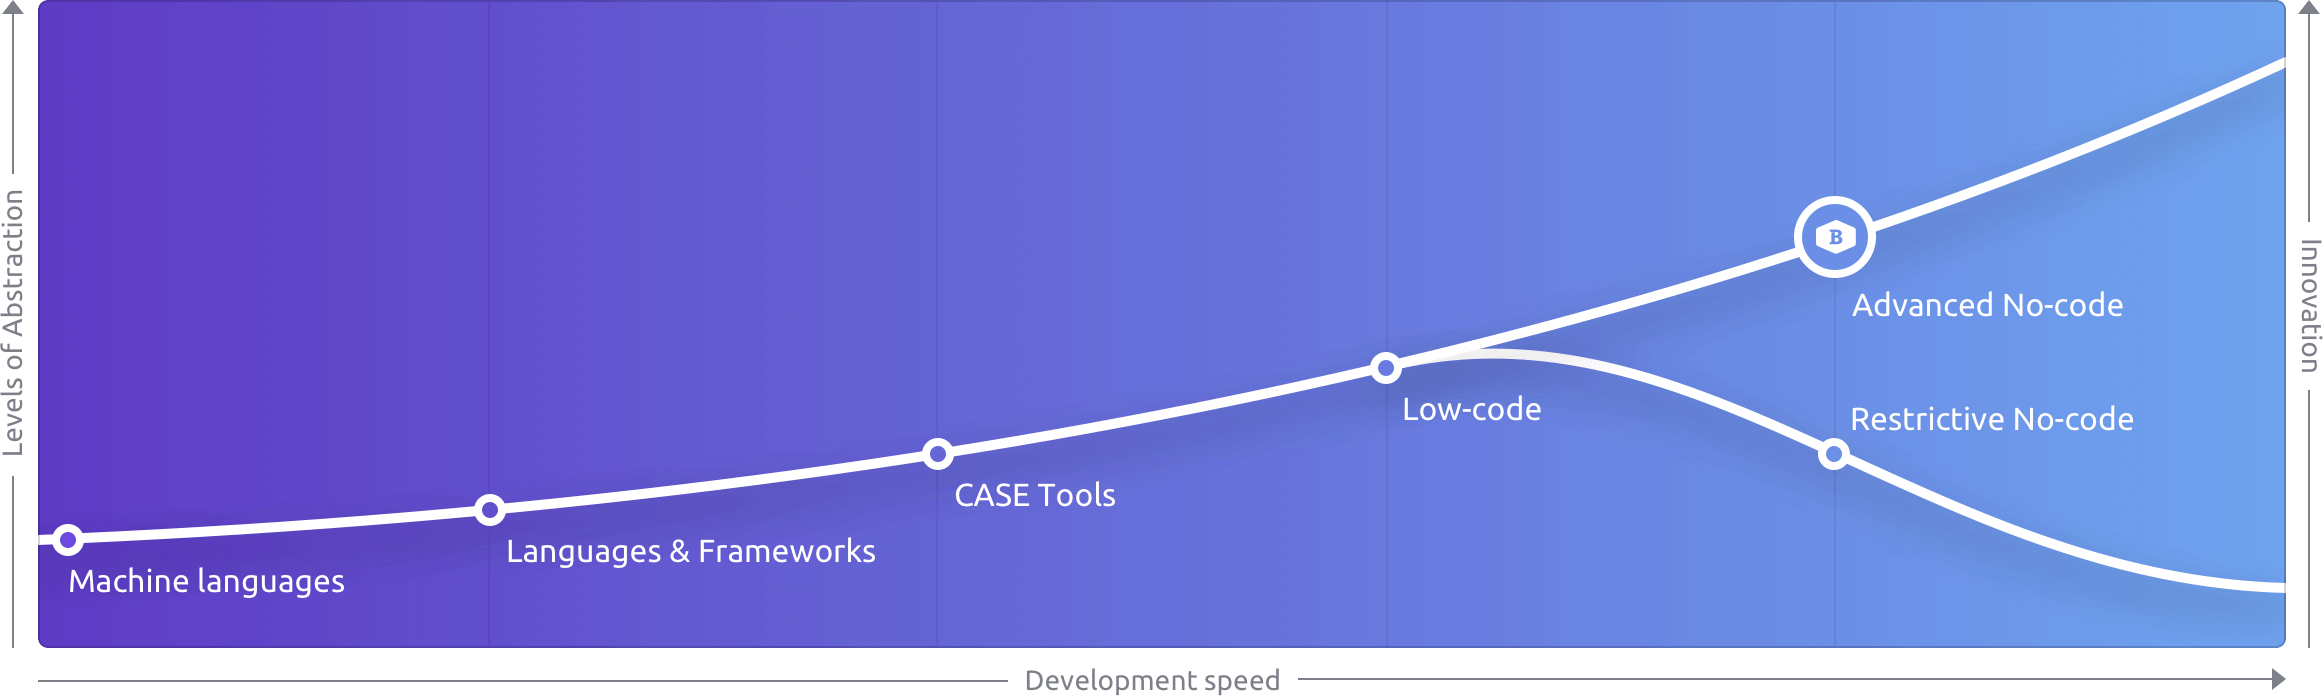 abstraction and development speed graph